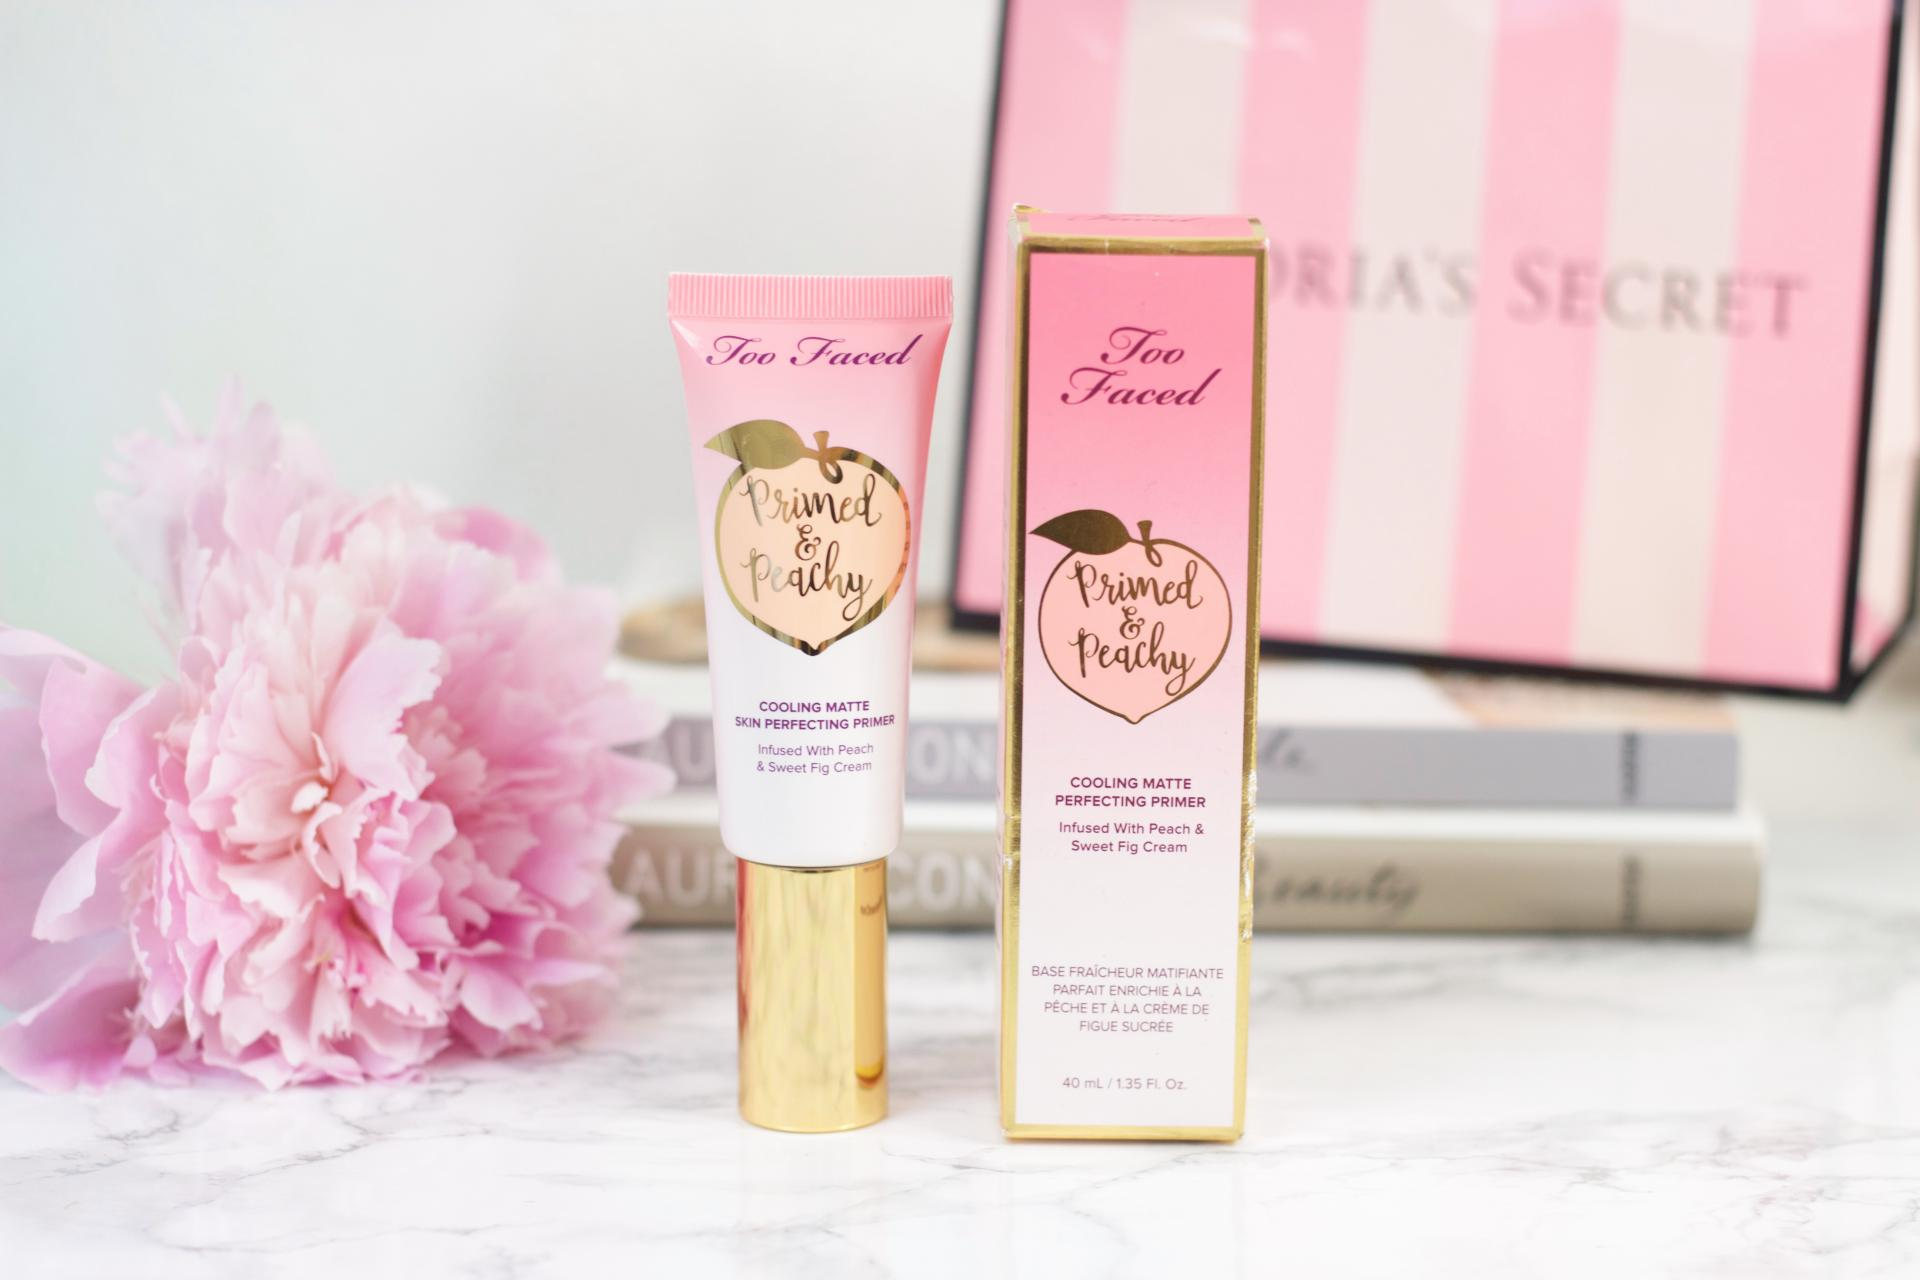 Too Faced Peachy cooling matte primer